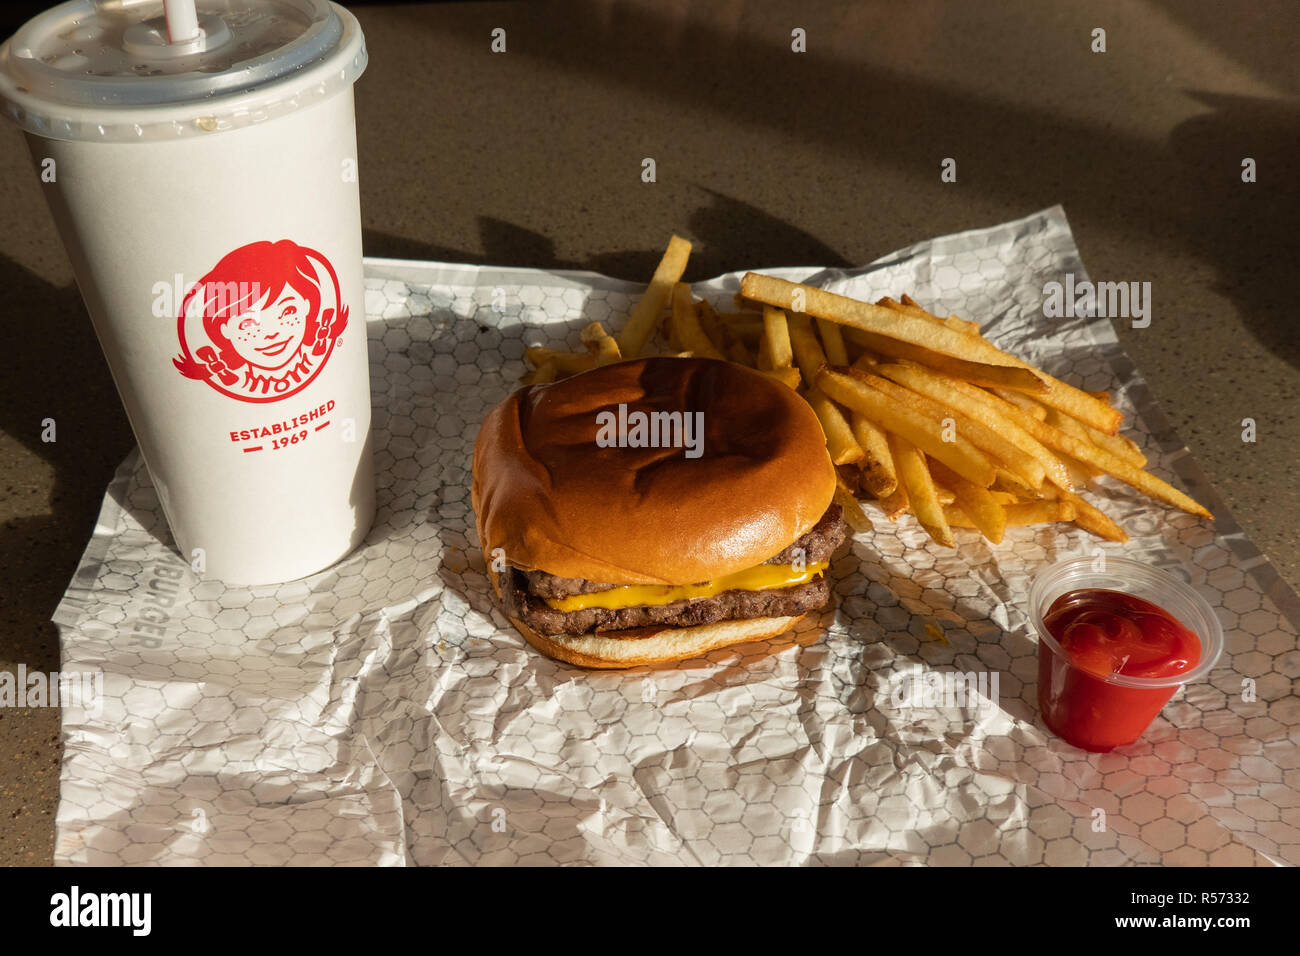 a-wendys-daves-double-cheeseburger-combo-consisting-of-a-double-cheeseburger-fries-and-a-beverage-at-their-location-in-amsterdam-ny-usa-R57332.jpg